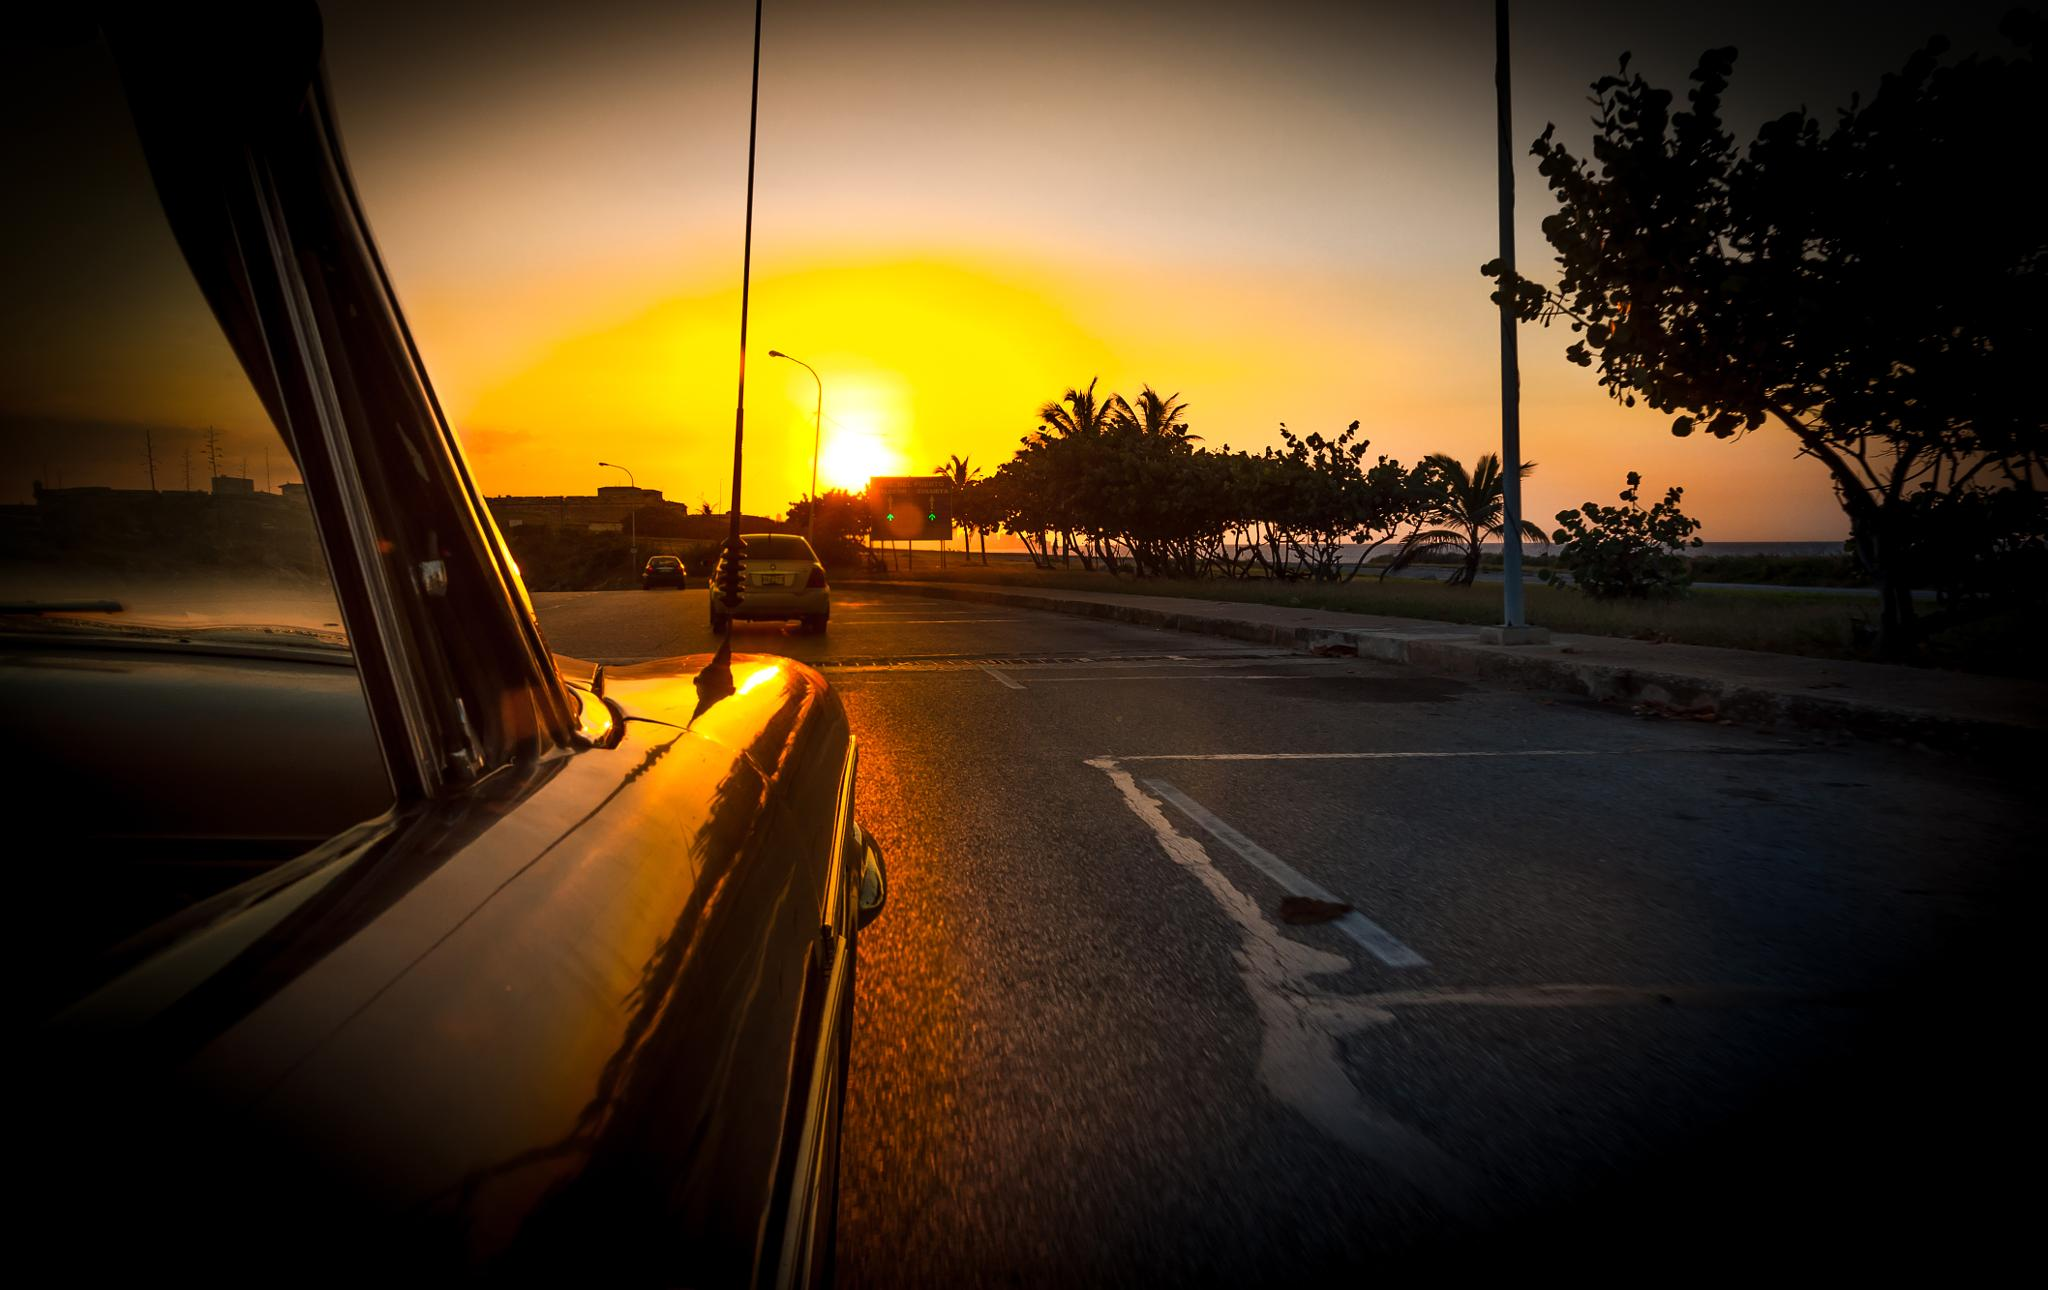 Driving into the sunset by K.Bargiel